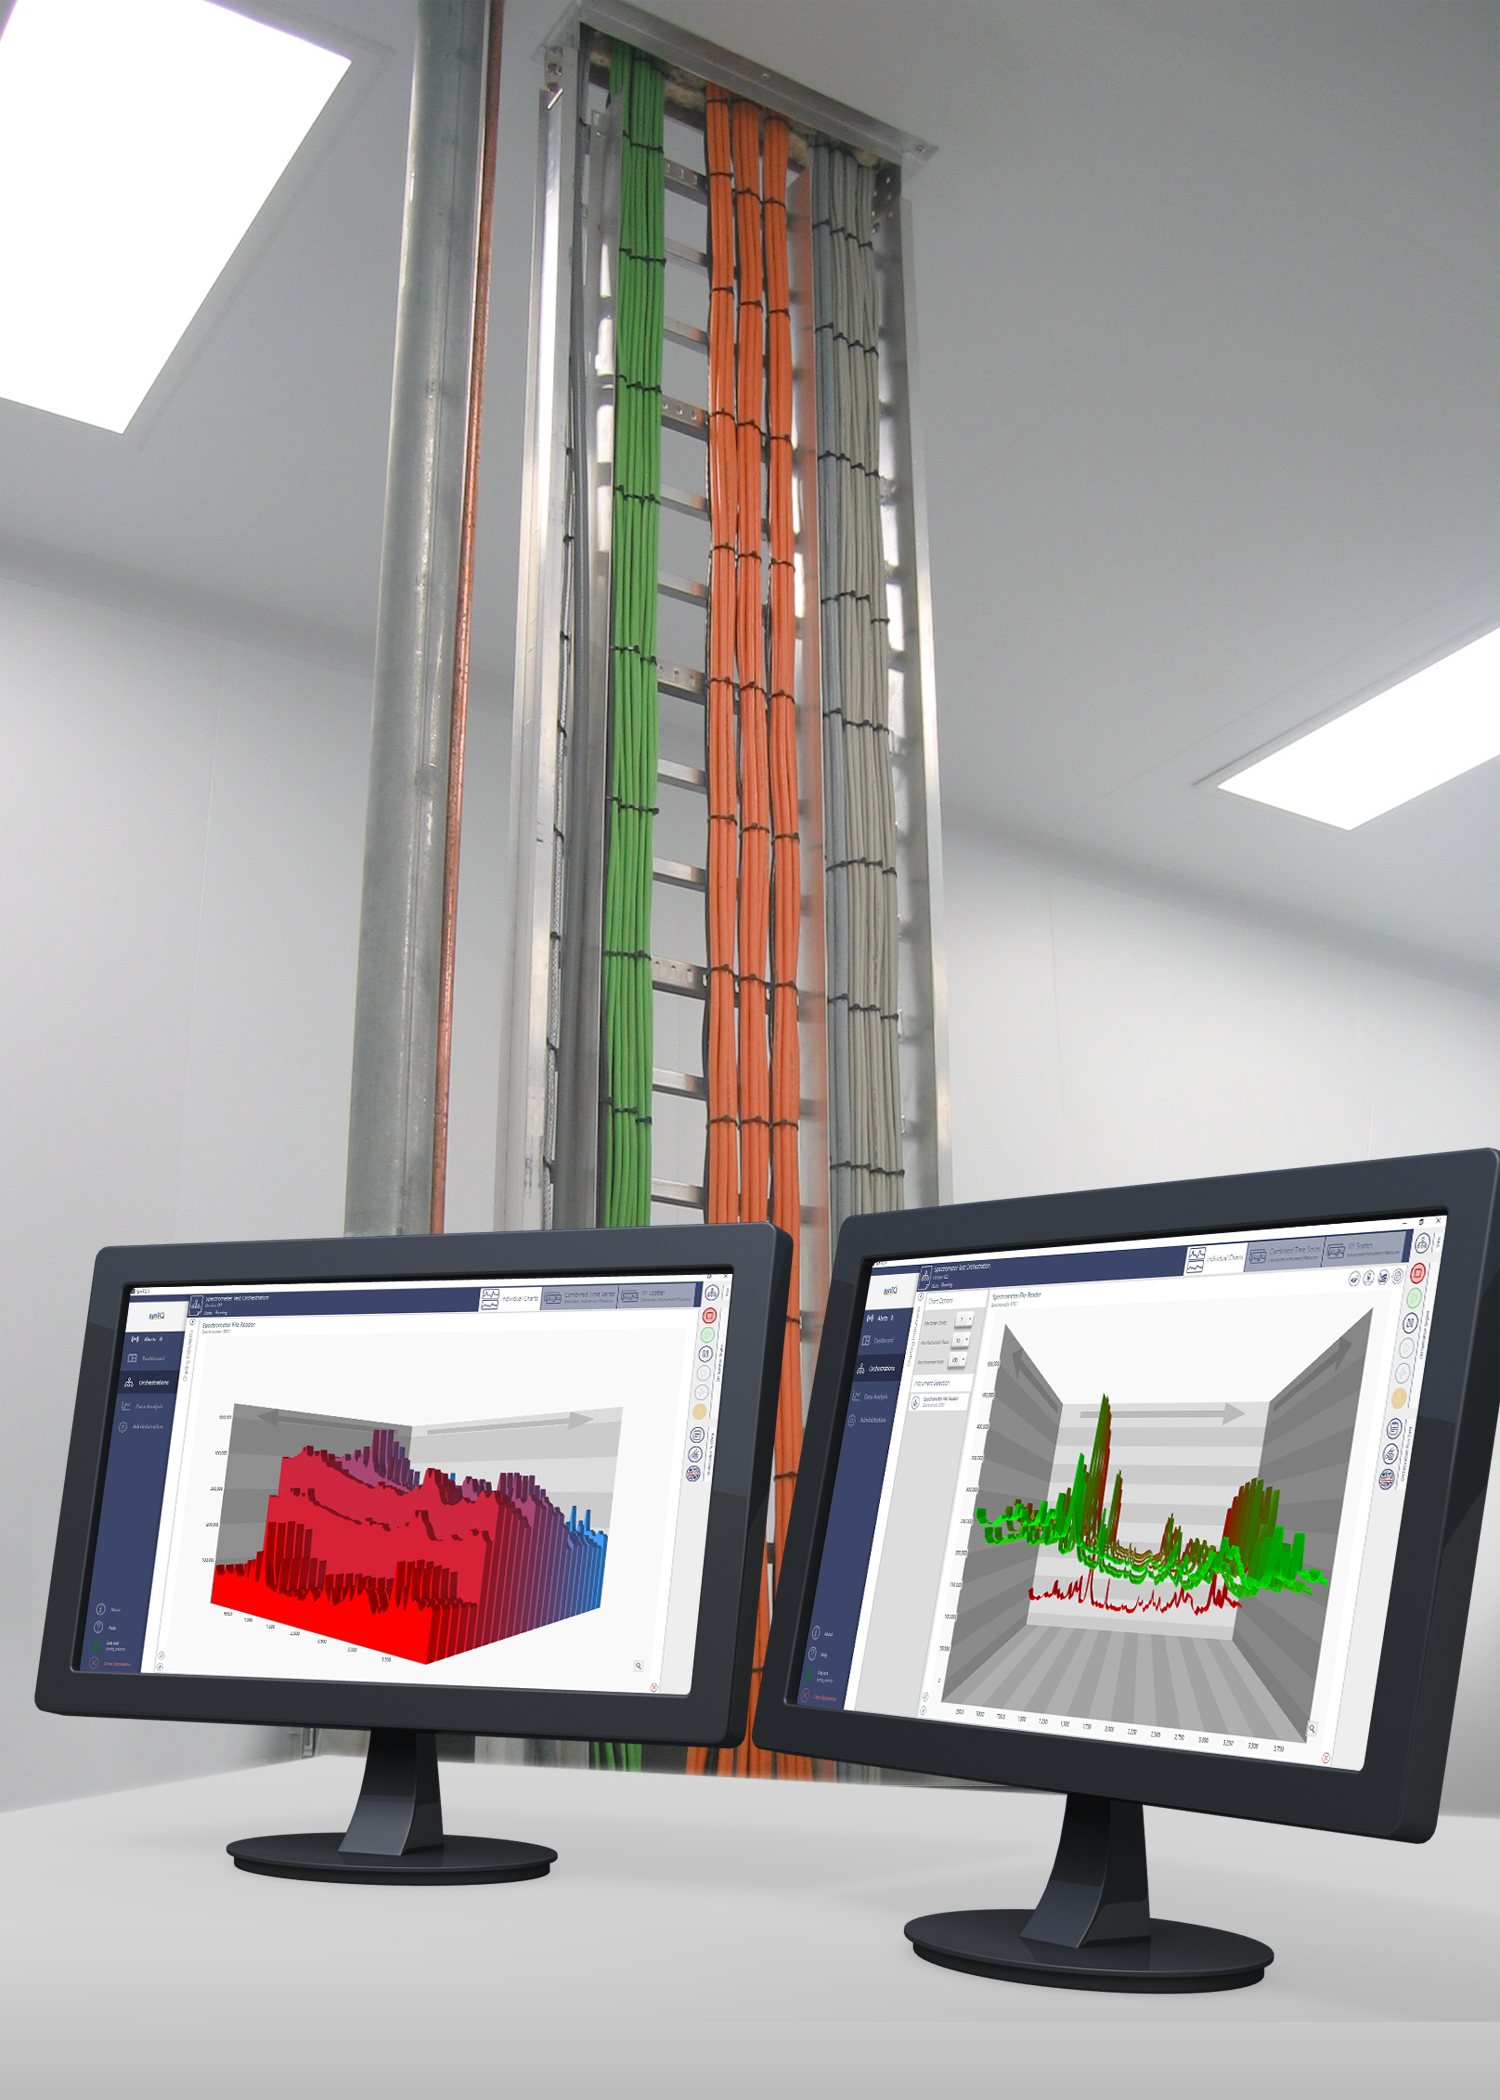 Optimal Industrial Automation presents continuous process implementation at IFPAC Cortona 2016